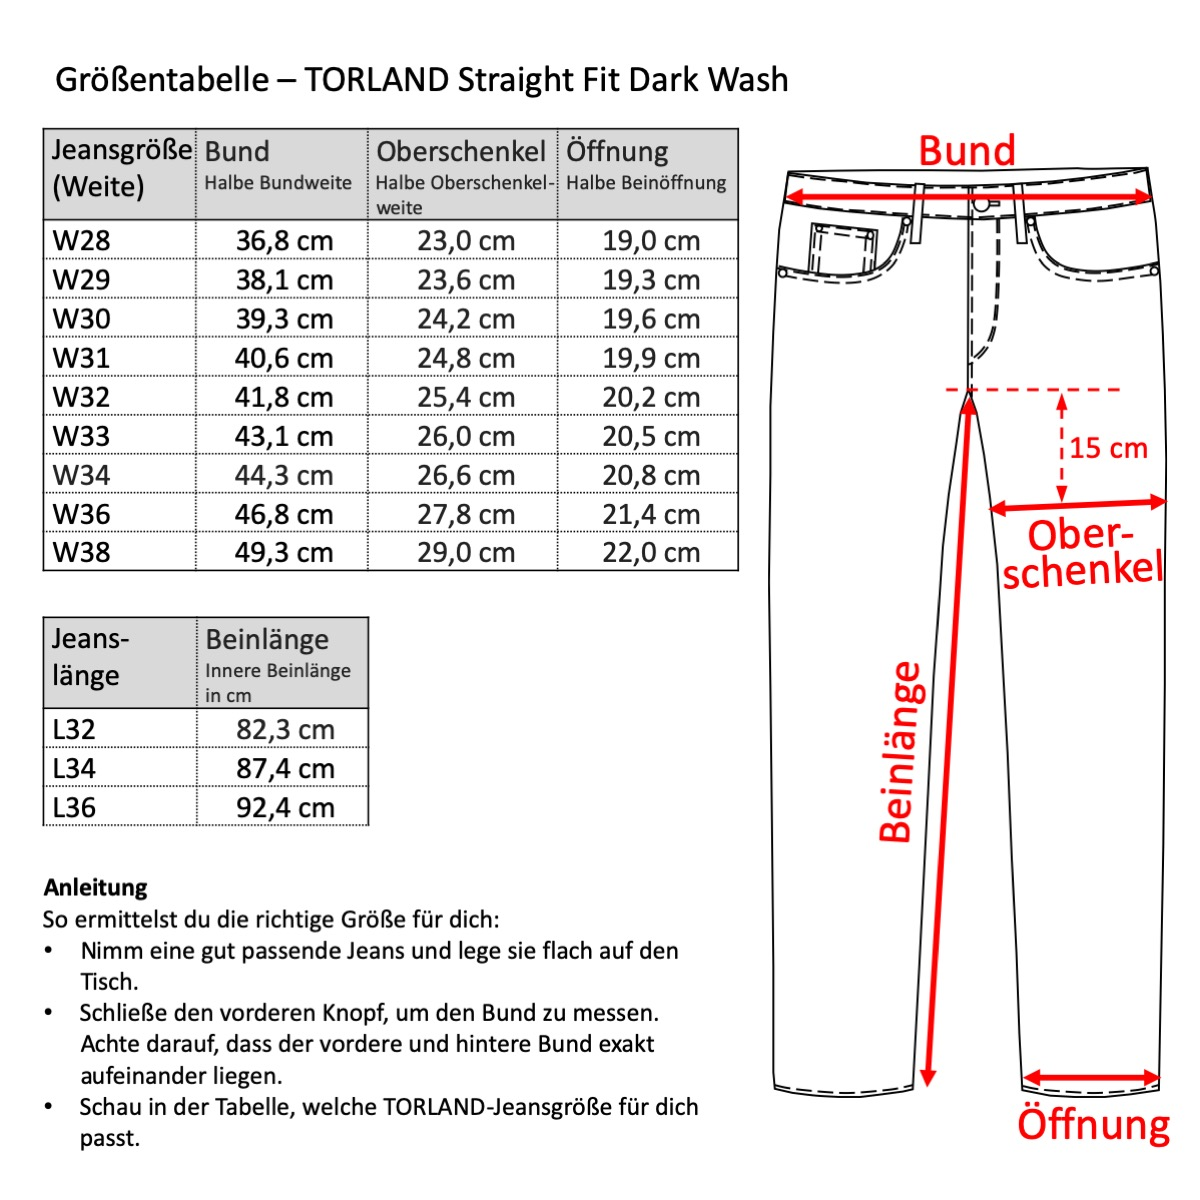 Grössentabelle - TORLAND Straight Fit Dark Wash